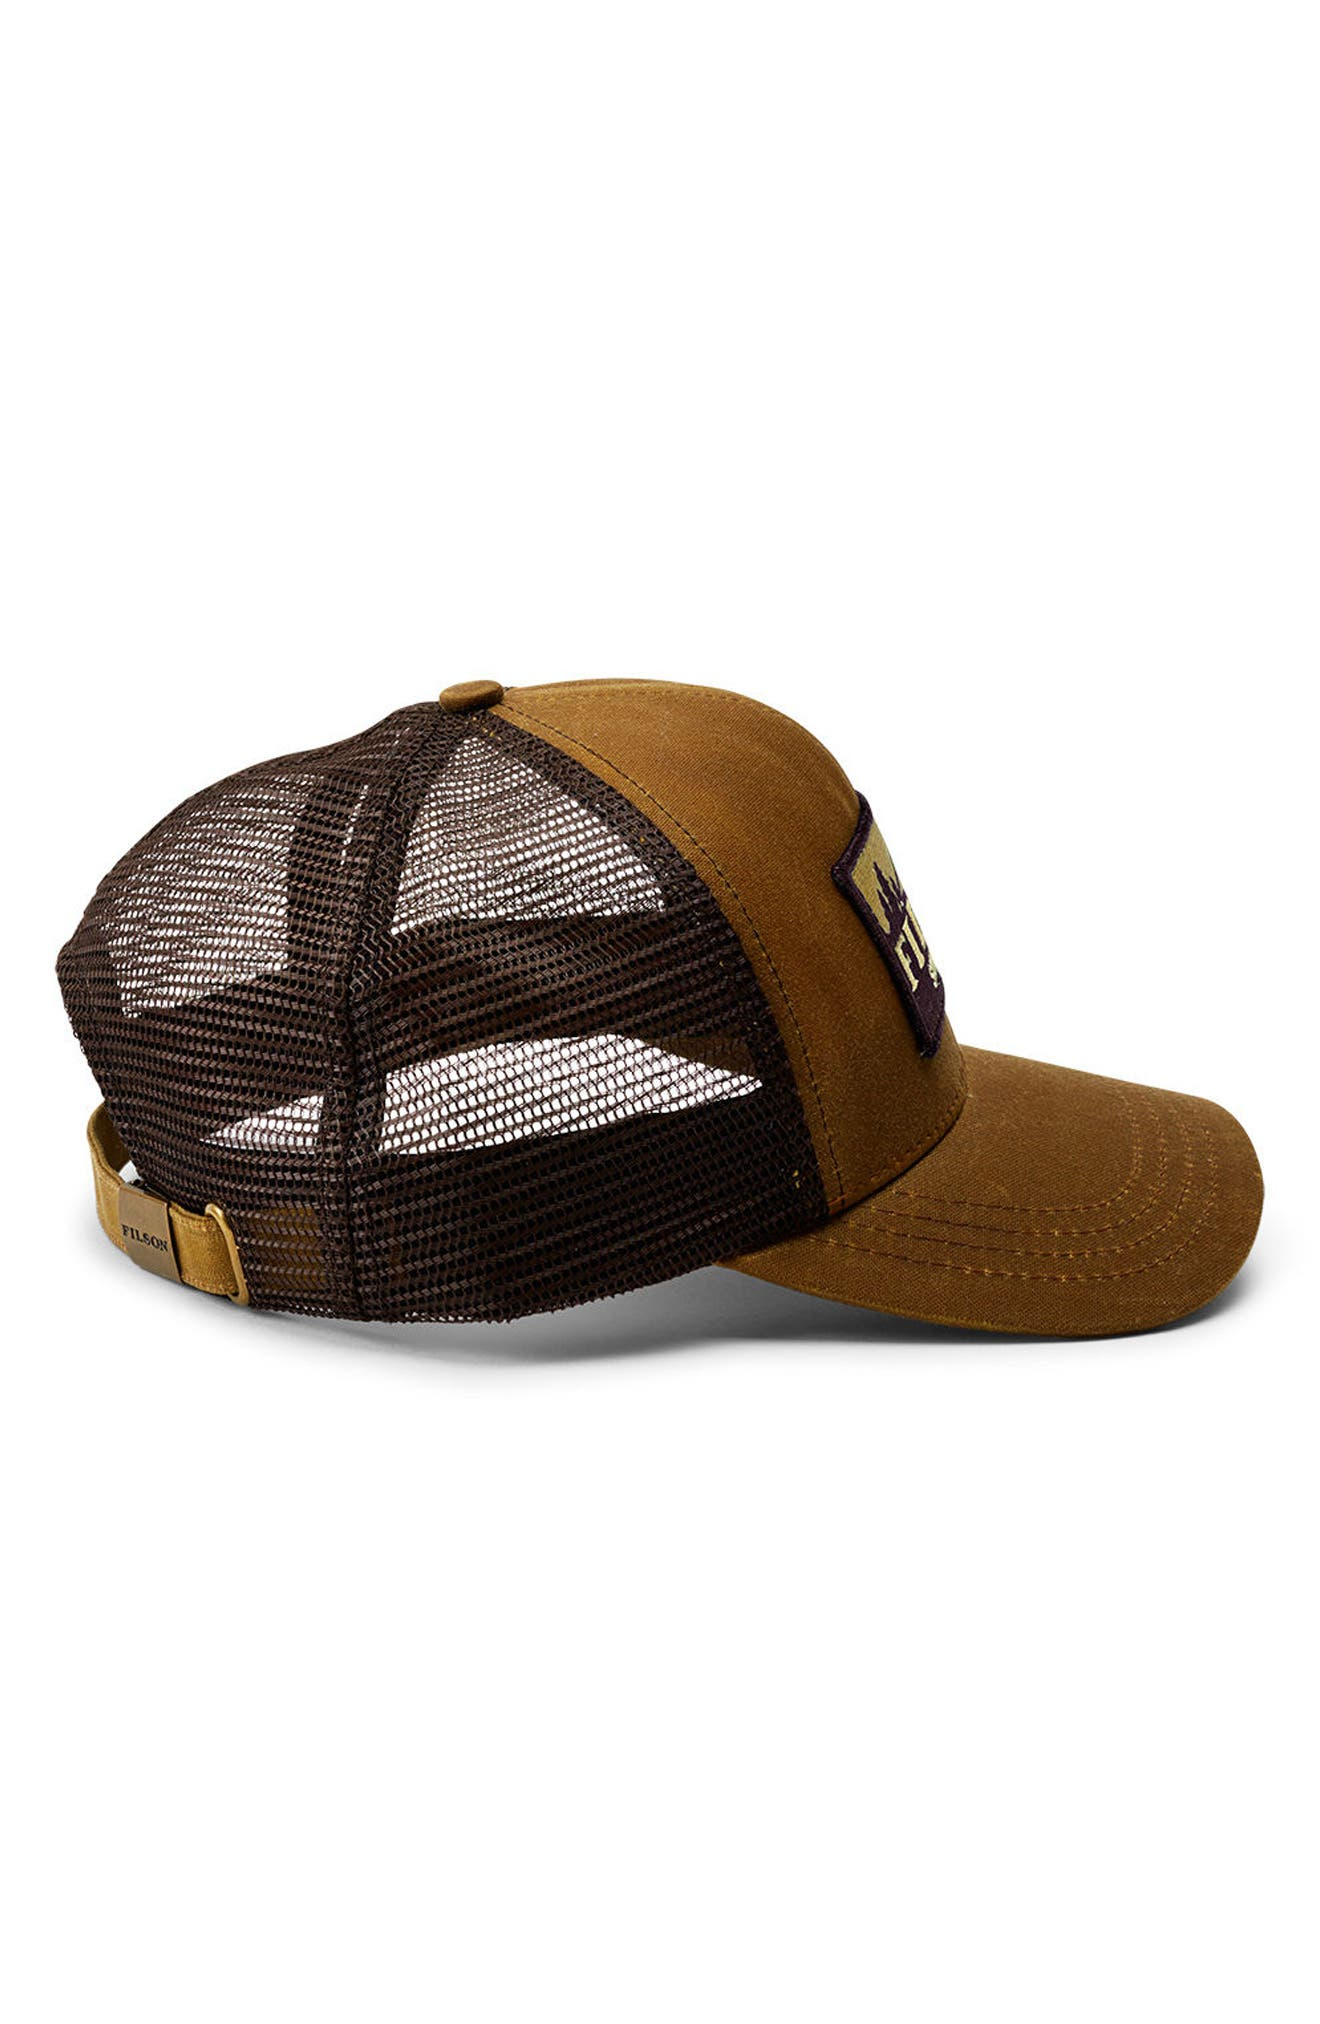 Logger Trucker Hat,                             Alternate thumbnail 2, color,                             DARK TAN